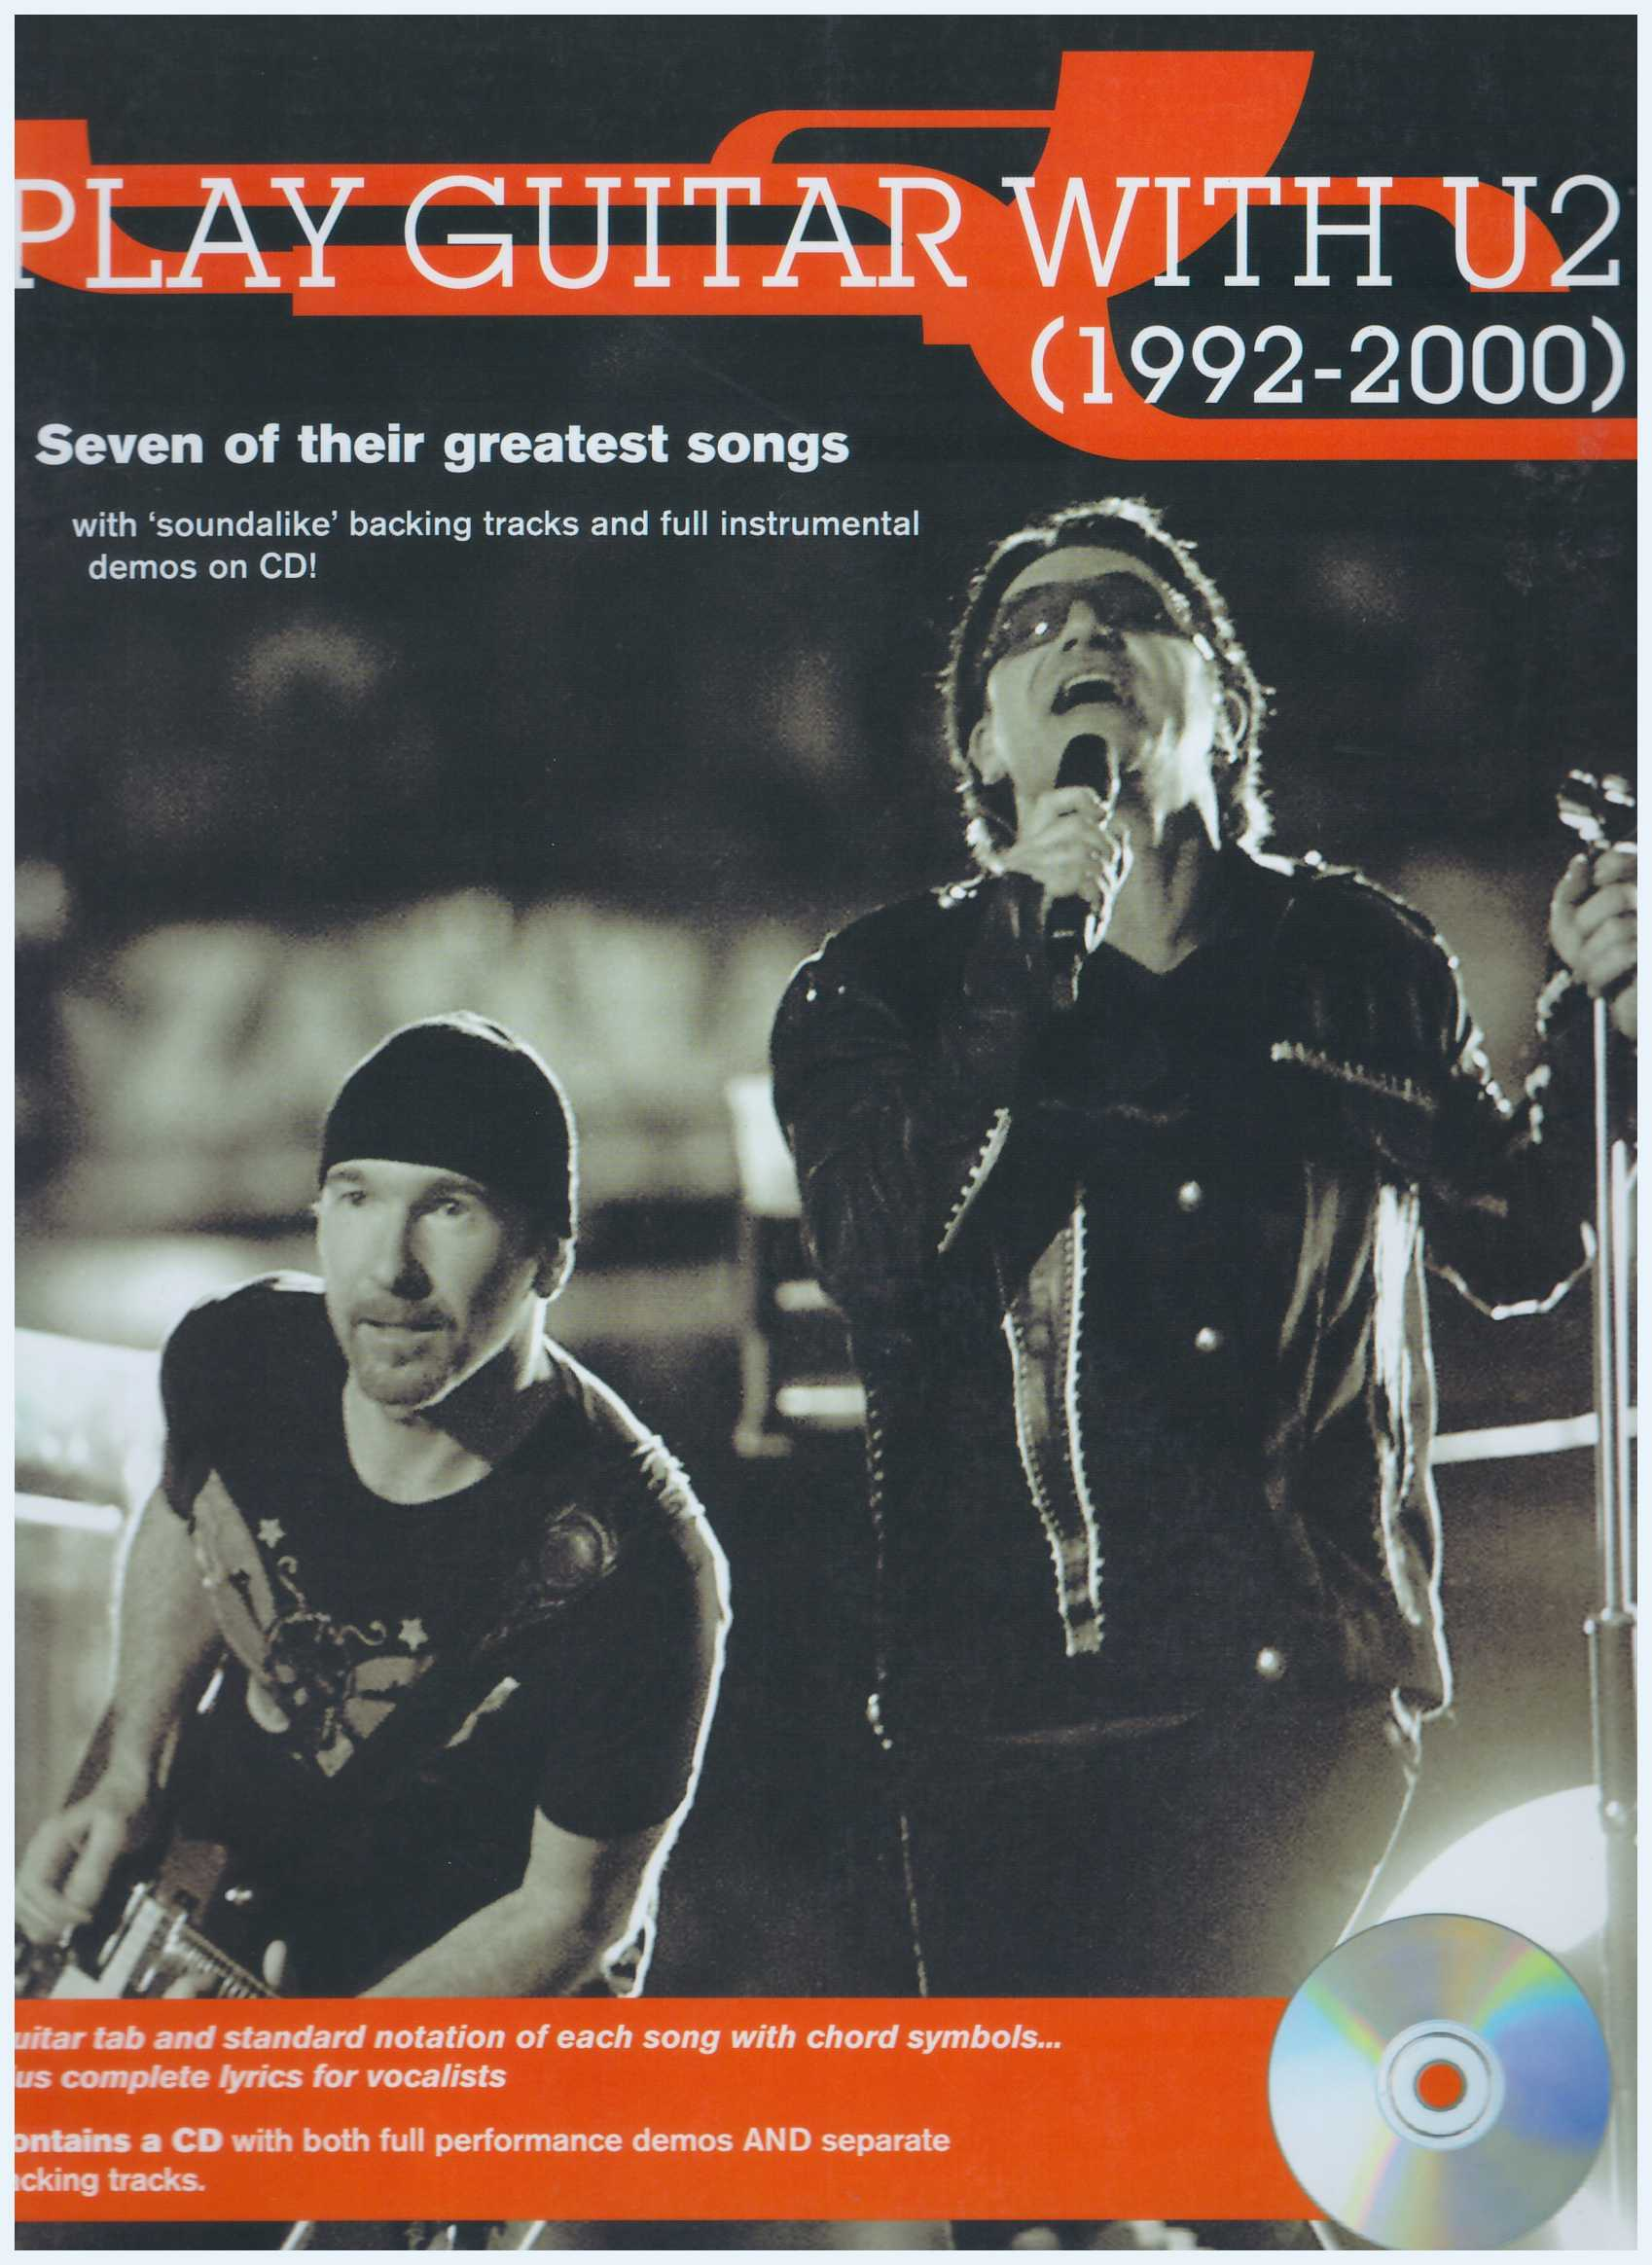 Play Guitar With U2 (1992 - 2000)  / Vocal Book / Voice Book / Guitar Book / Gitar Book / Guitar Tab Book